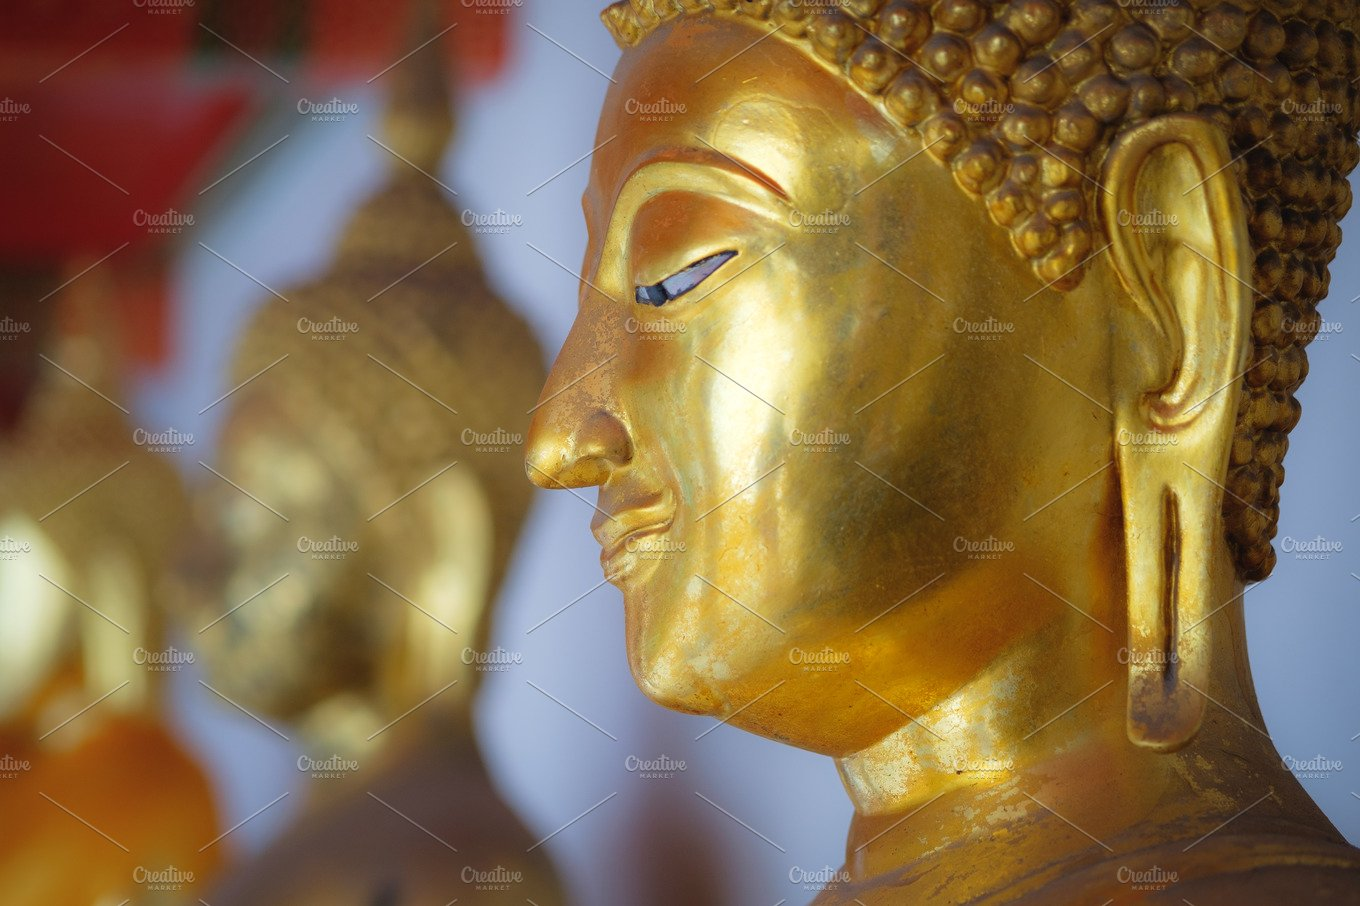 line of sitting gold buddha statues in wat pho temple in bangkok